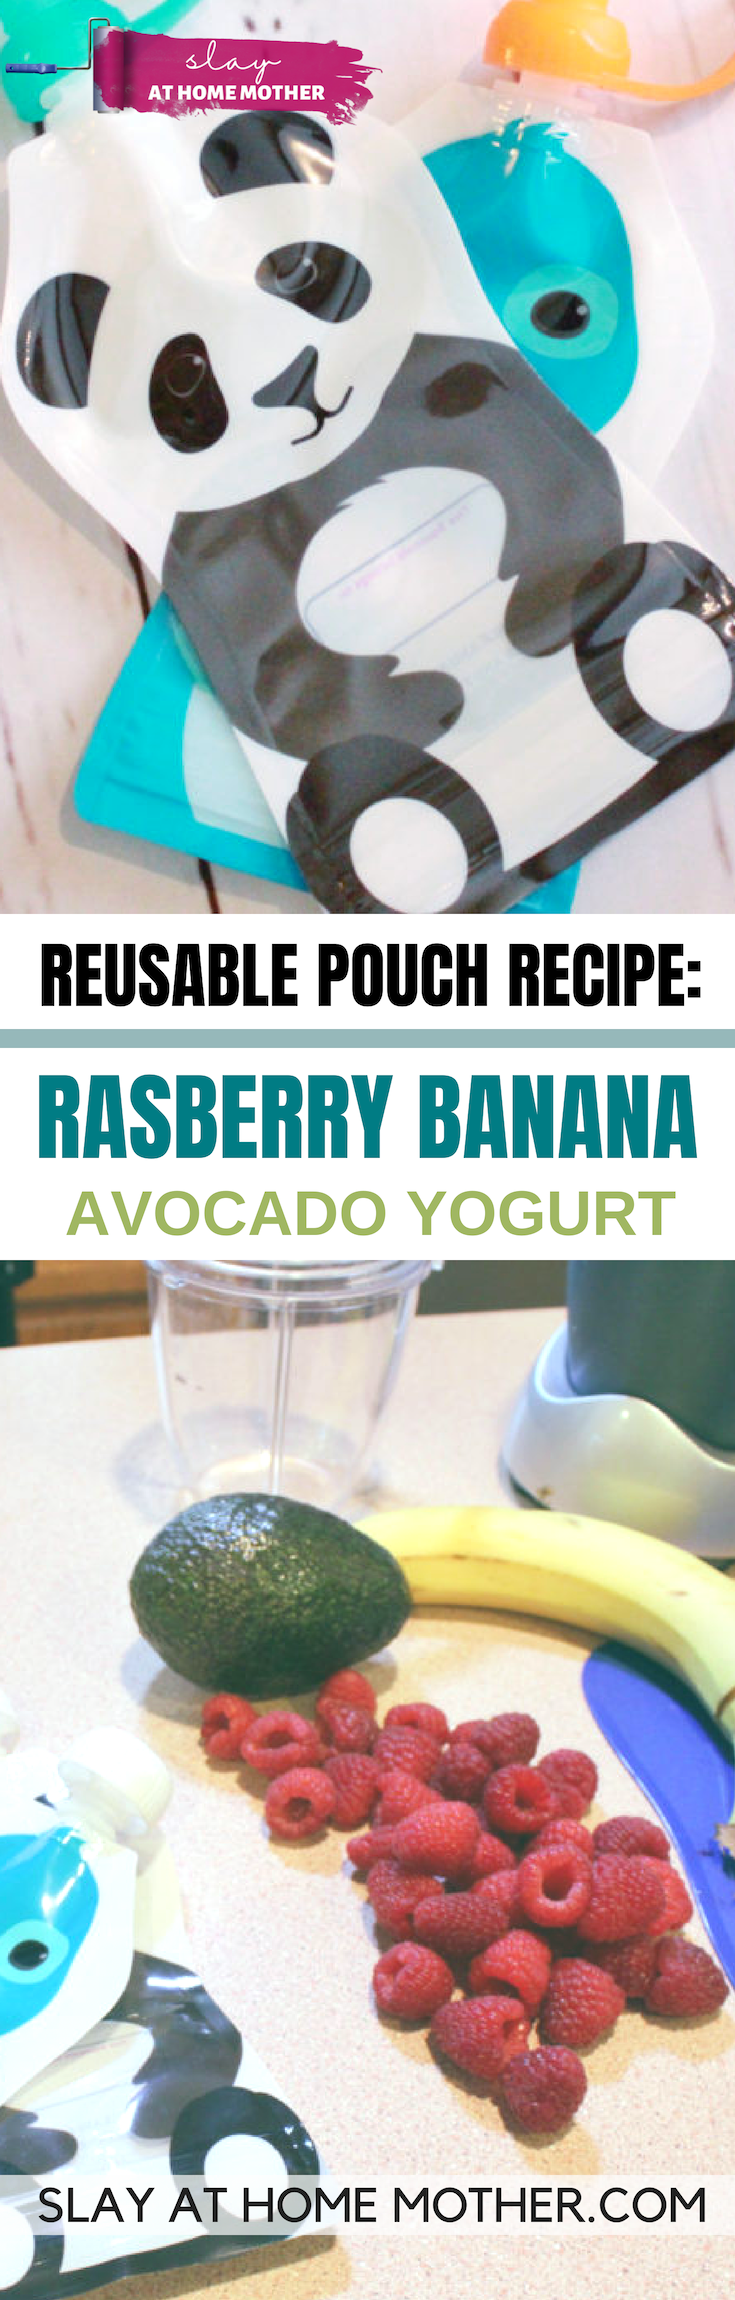 Raspberry Banana Avocado Yogurt Pouch Recipe #babyfood #reusablepouches #slayathomemother - SLAYathomemother.com